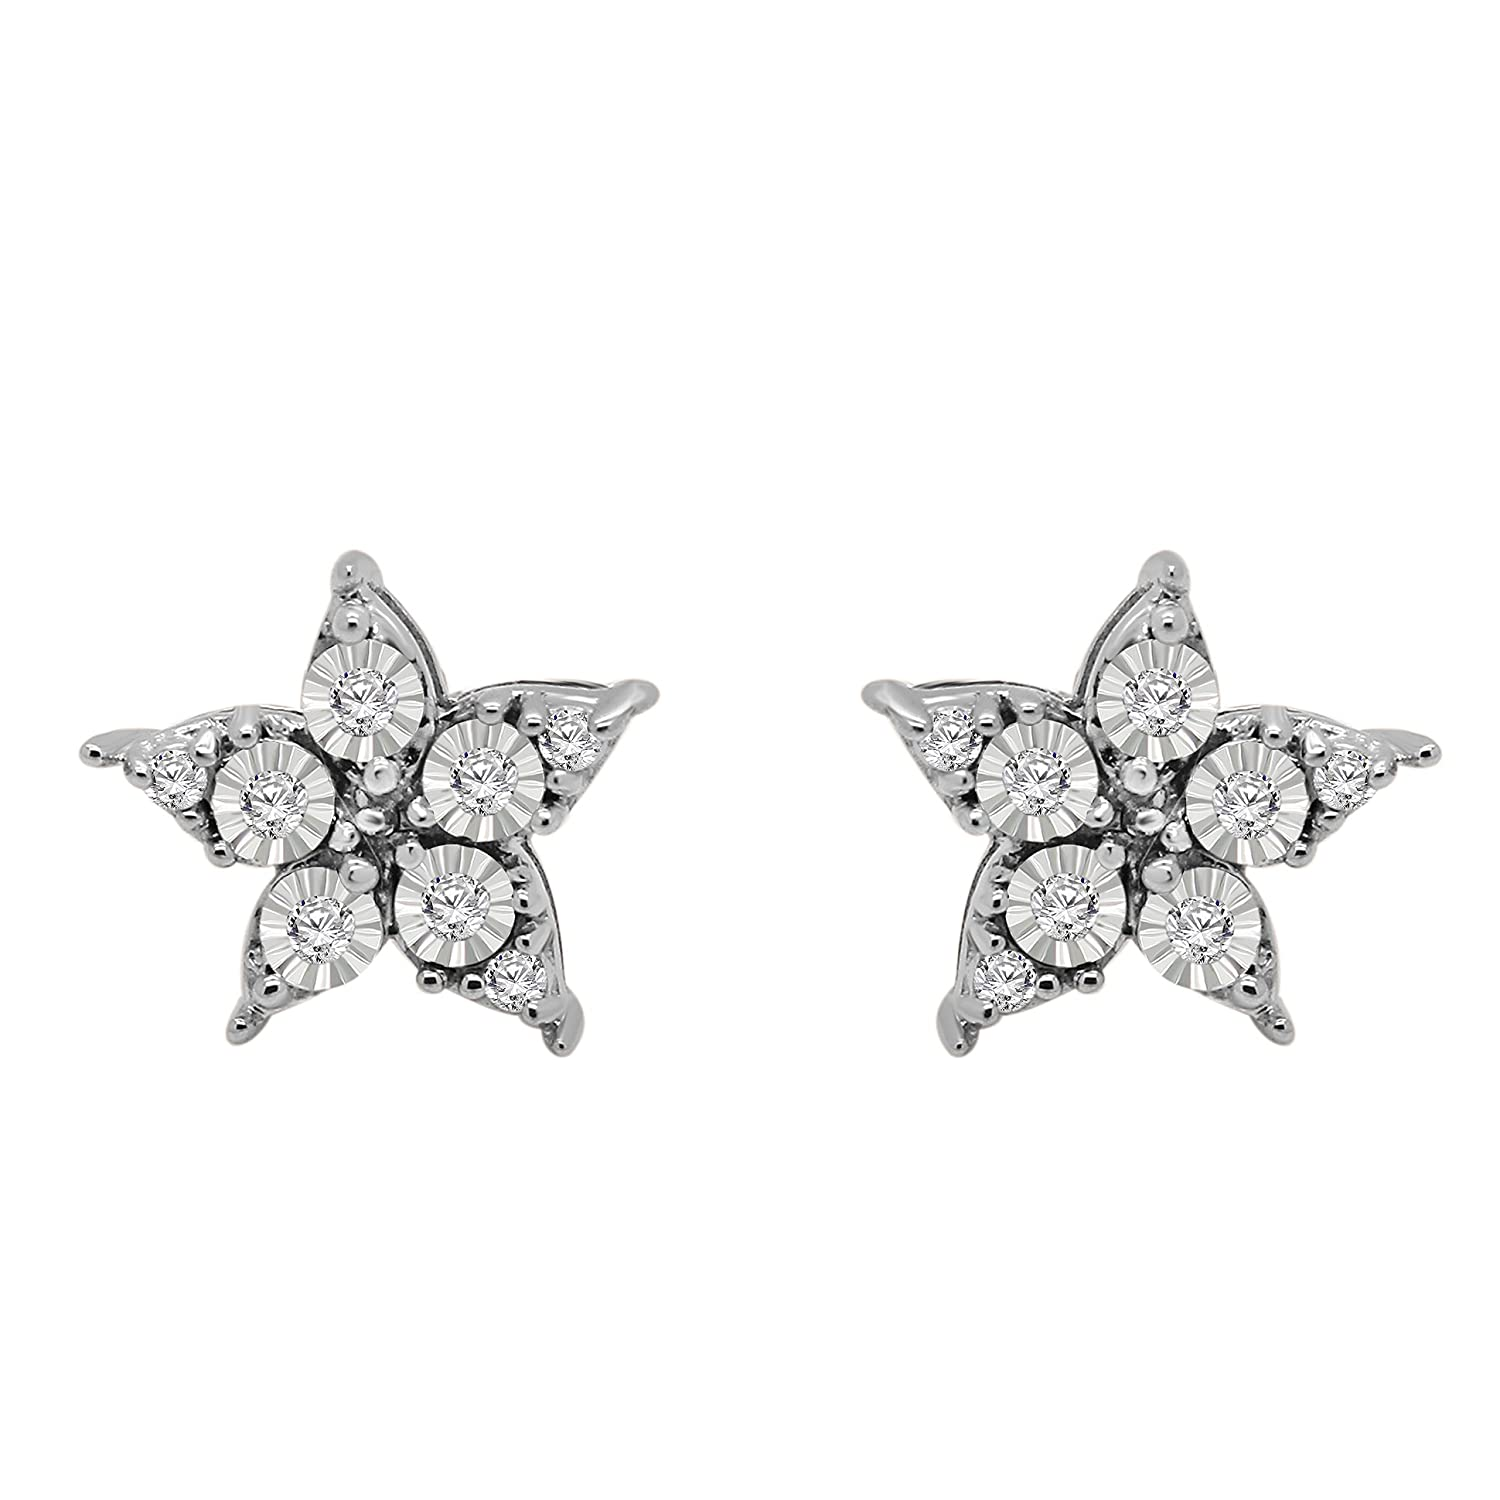 0.11 Ct Round Cut Natural Diamond Flower Stud Earrings With Push Back In 14K Solid Gold